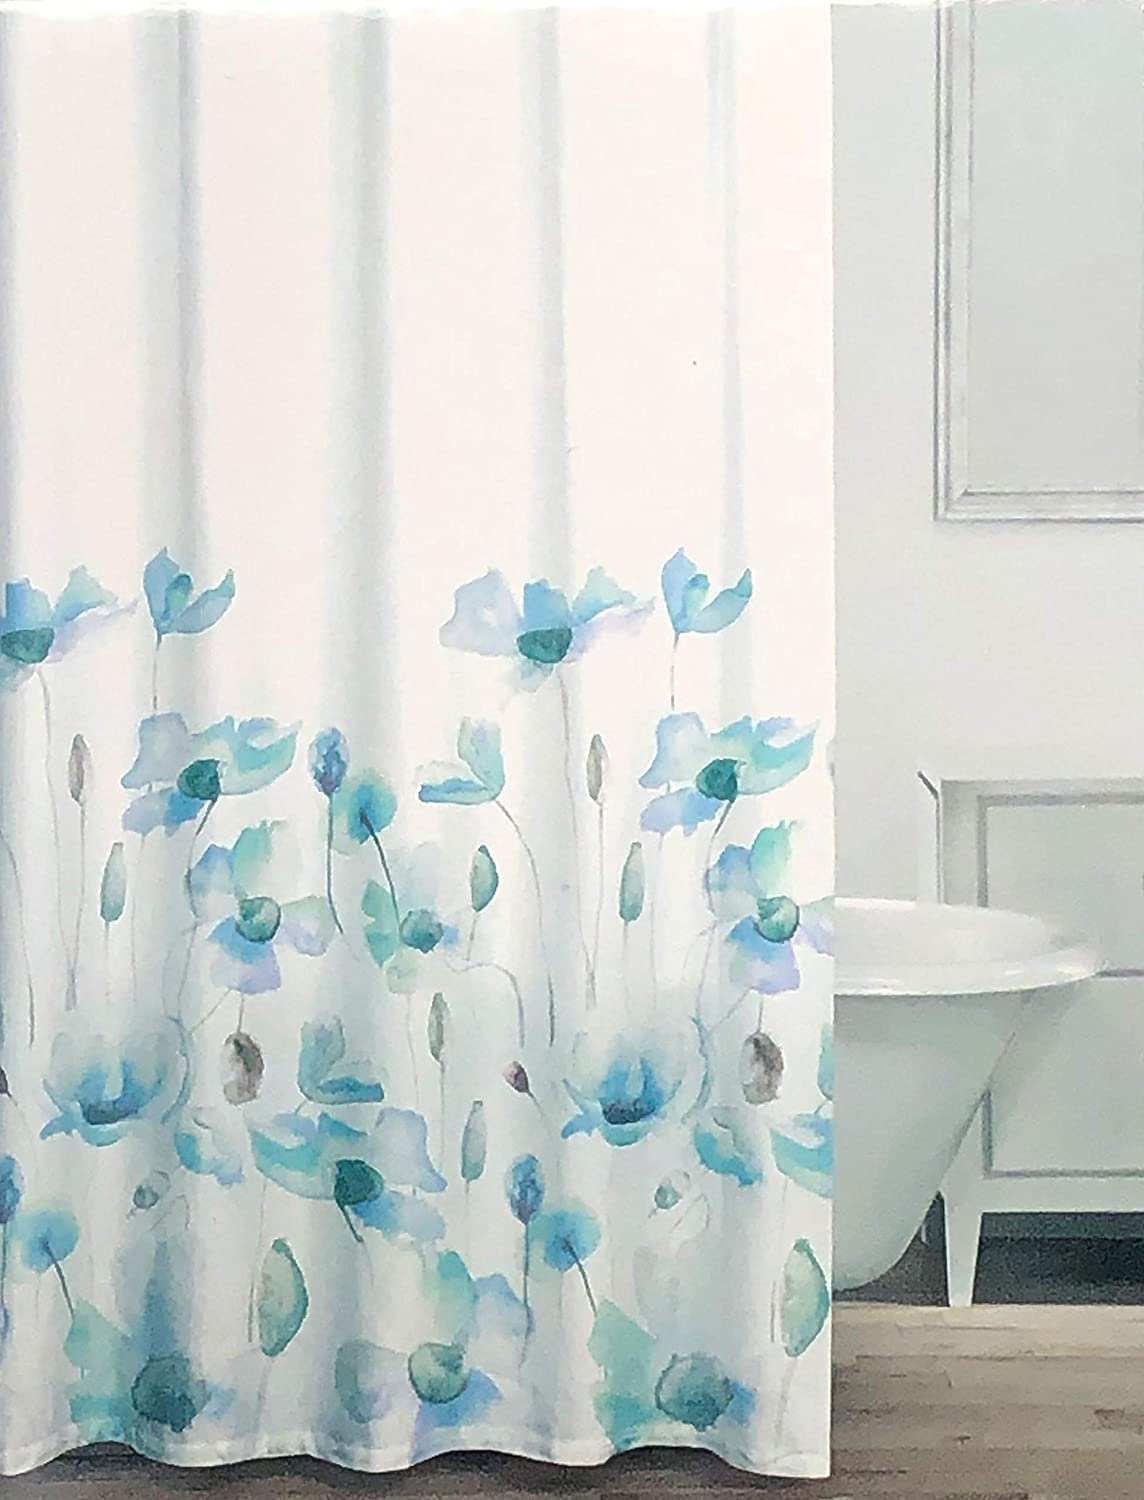 Caro Fabric Shower Curtain Watercolor Bloom Floral Pattern in Shades of Blue Green Taupe on White - Poppy, Waterfall